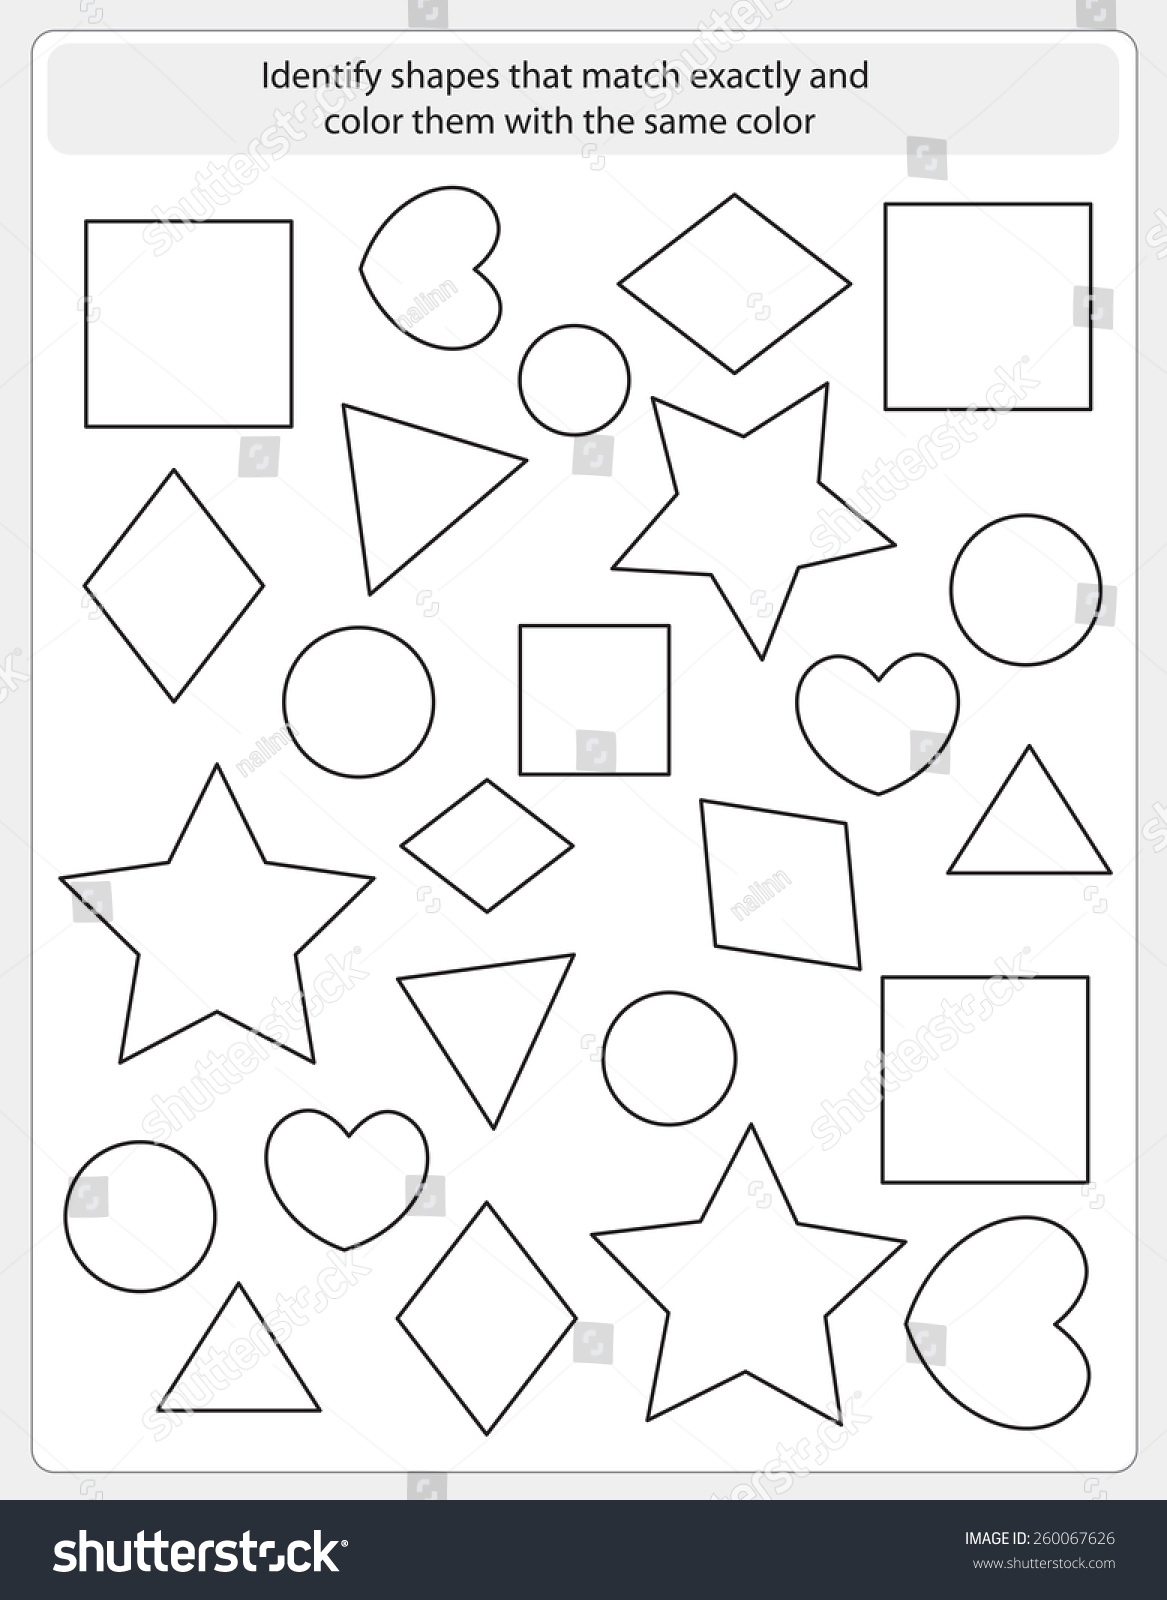 Coloring shapes worksheet - Kids Worksheet With Shapes To Match And Color Same Shape